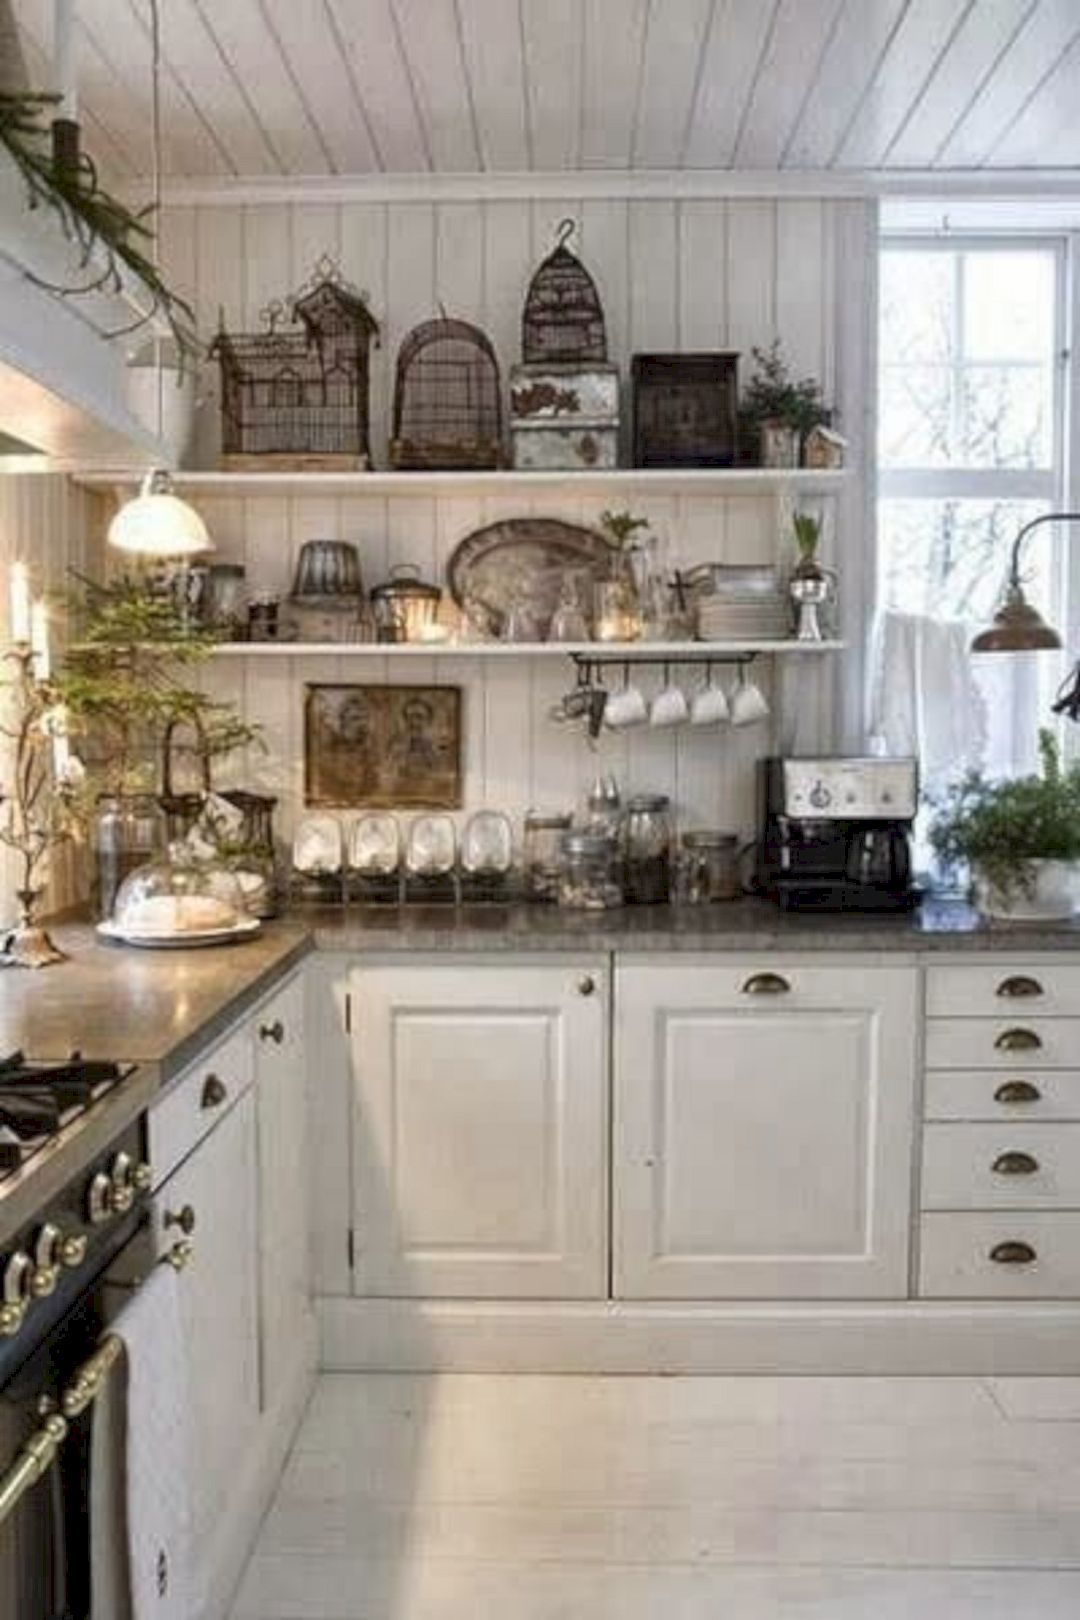 15 Beautiful Country Kitchen Designs | Kitchens, Country kitchen ...